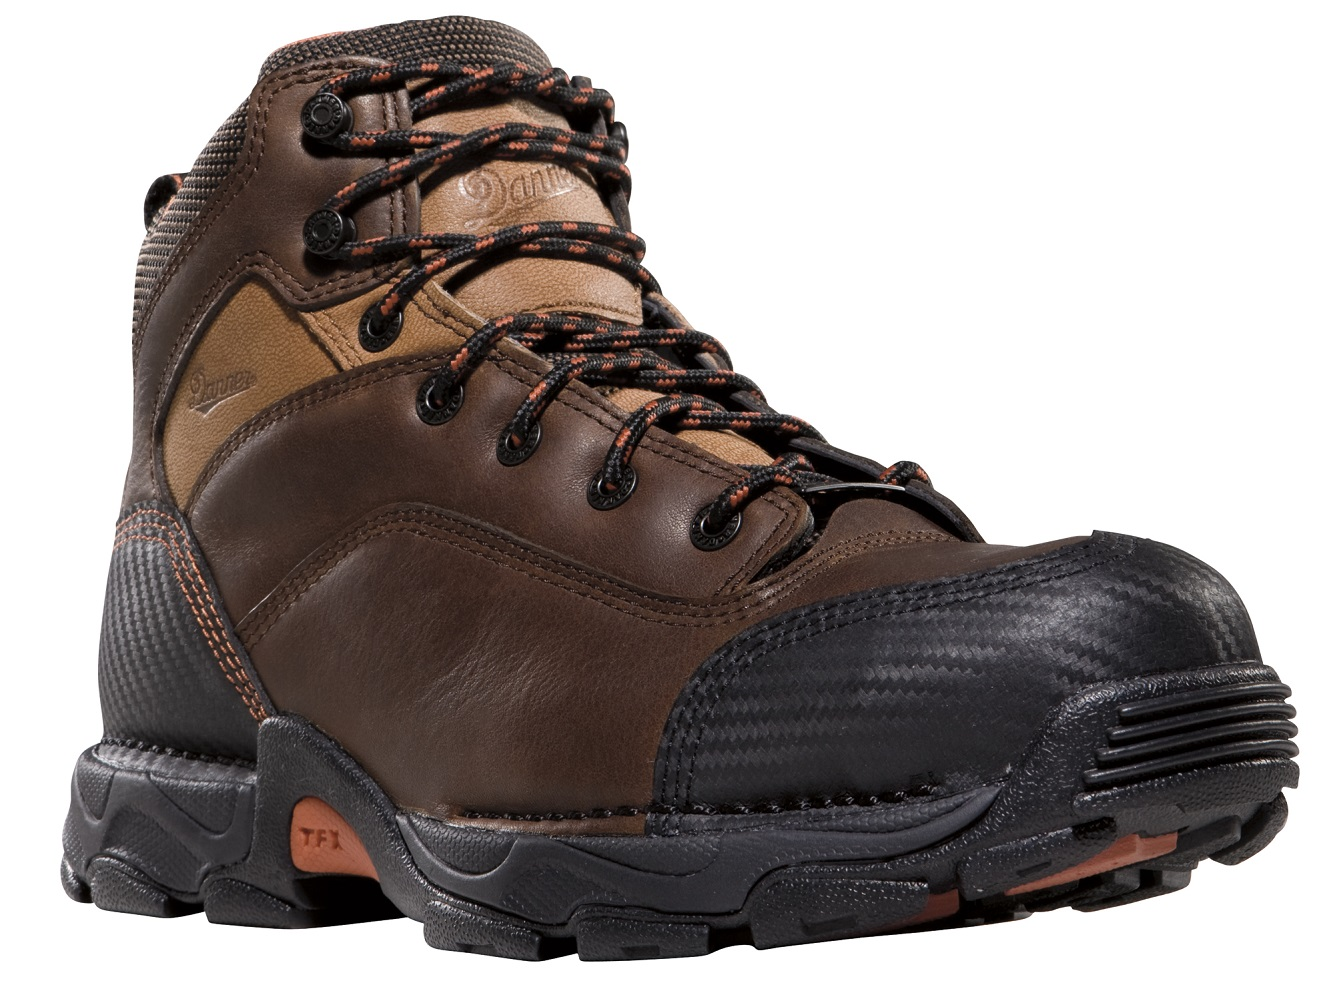 Danner Corvallis Safety Toe Workboot 17602